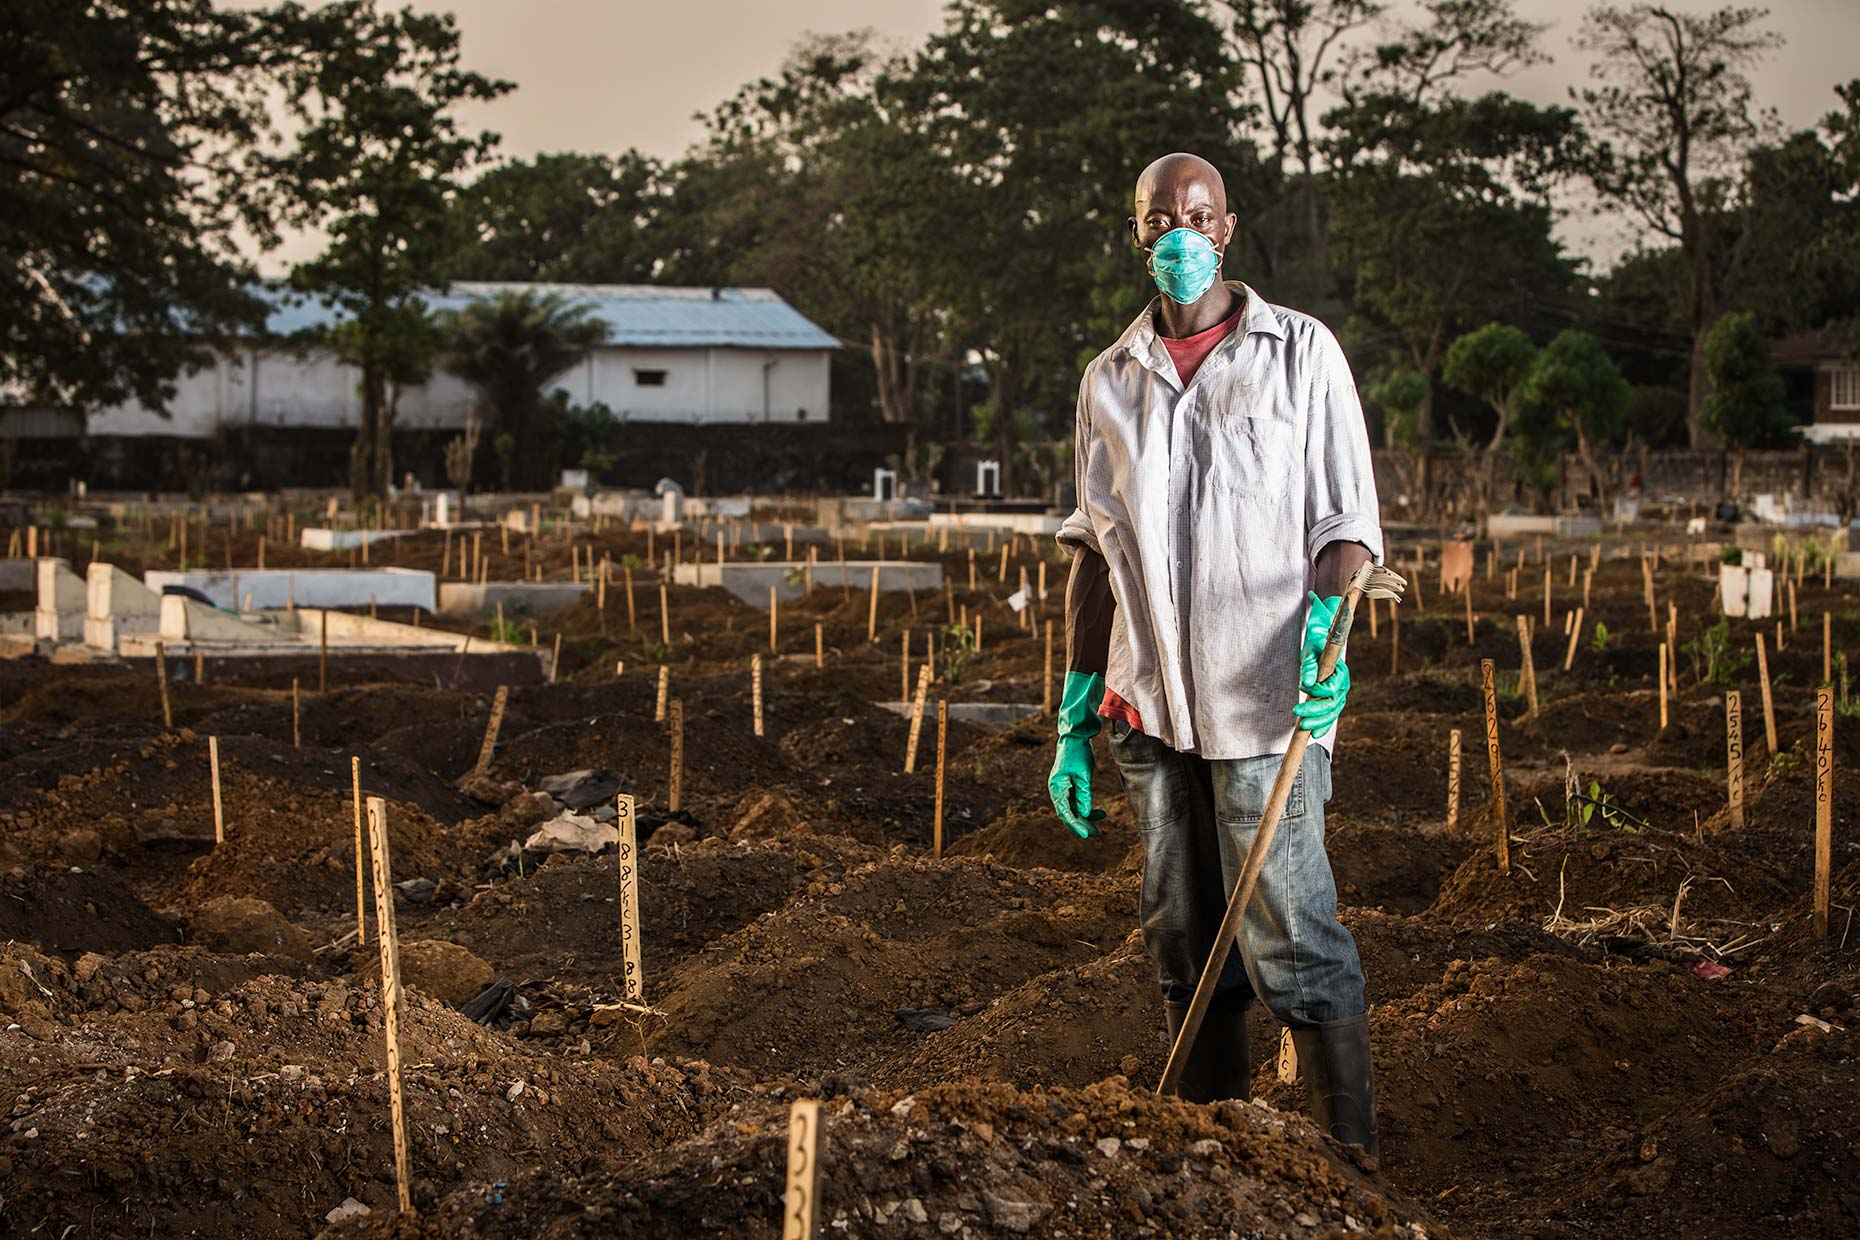 A worker wearing surgical mask and gloves while digging in a smokey Ebola graveyard